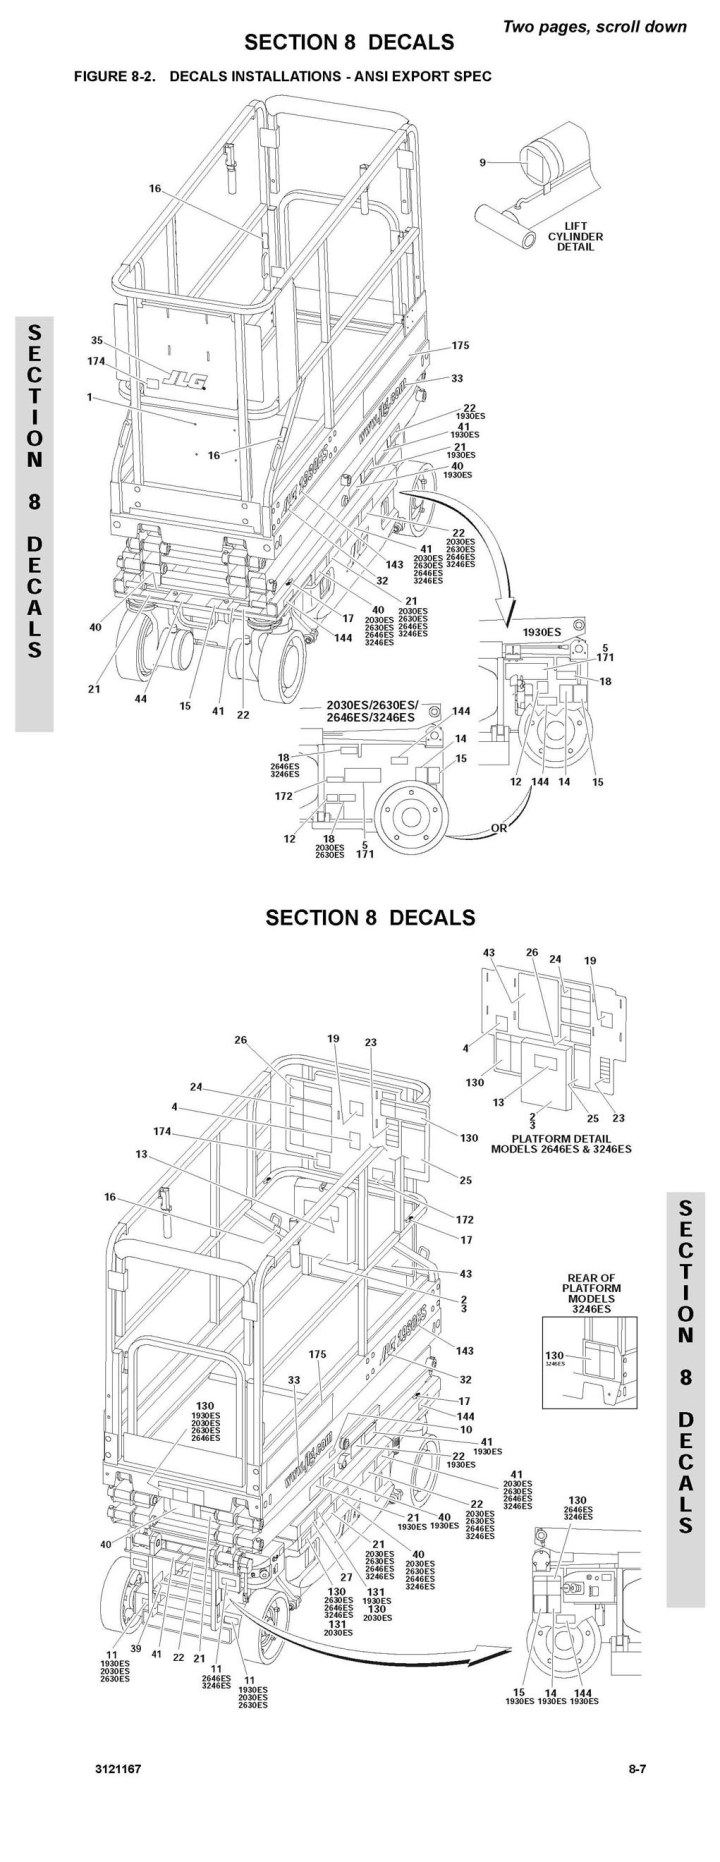 Jlg 20am Wiring Diagram. jlg scissor lift wiring diagram